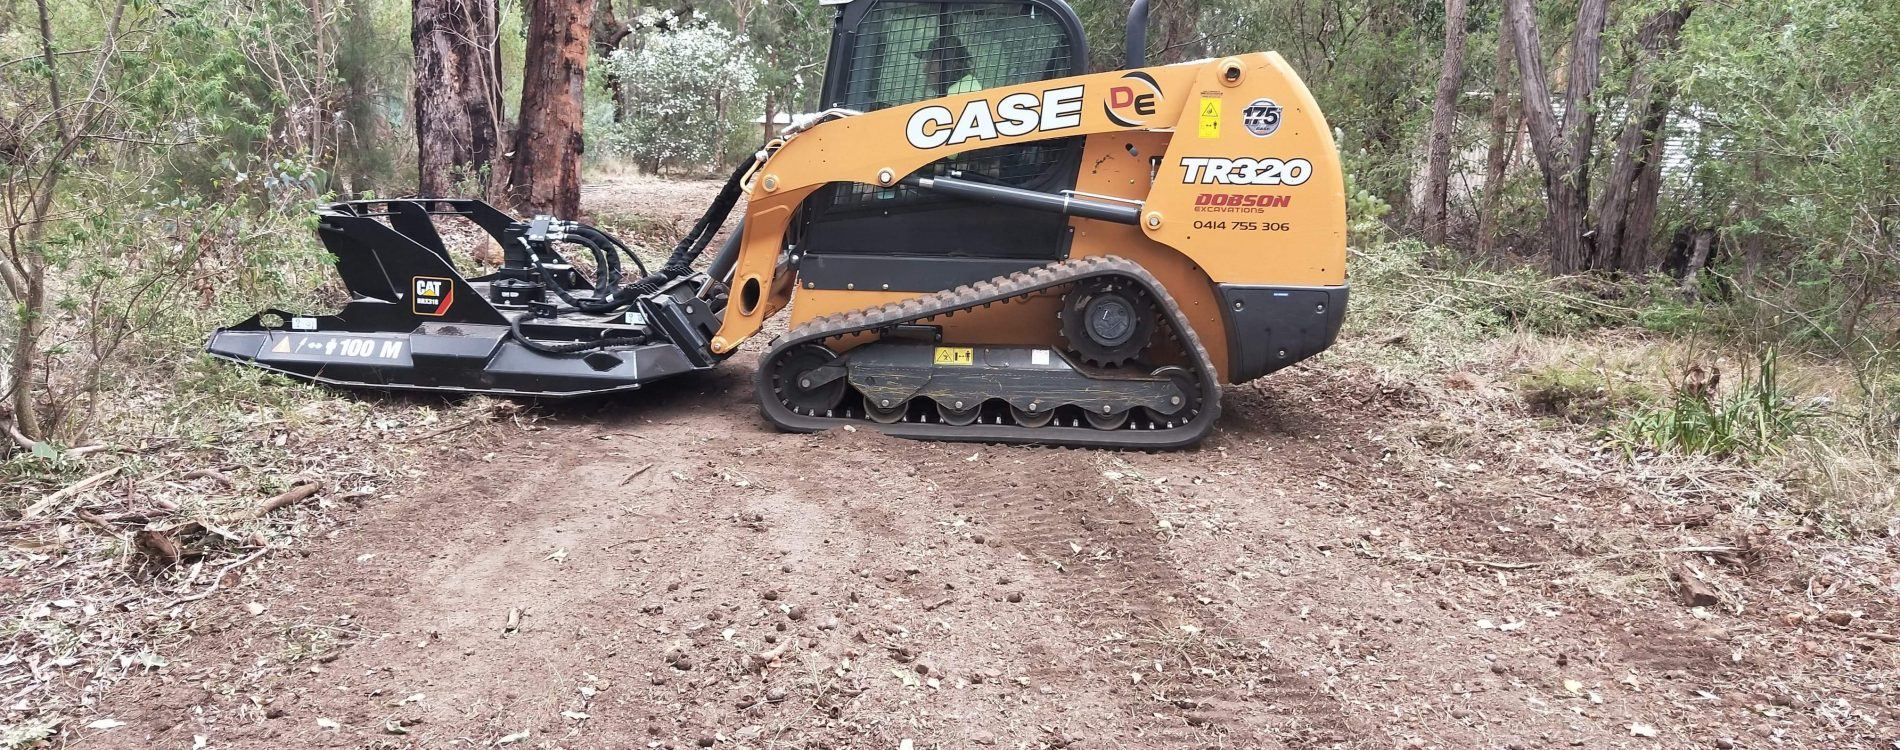 Slasher-Brush Cutter Hire with Bobcat